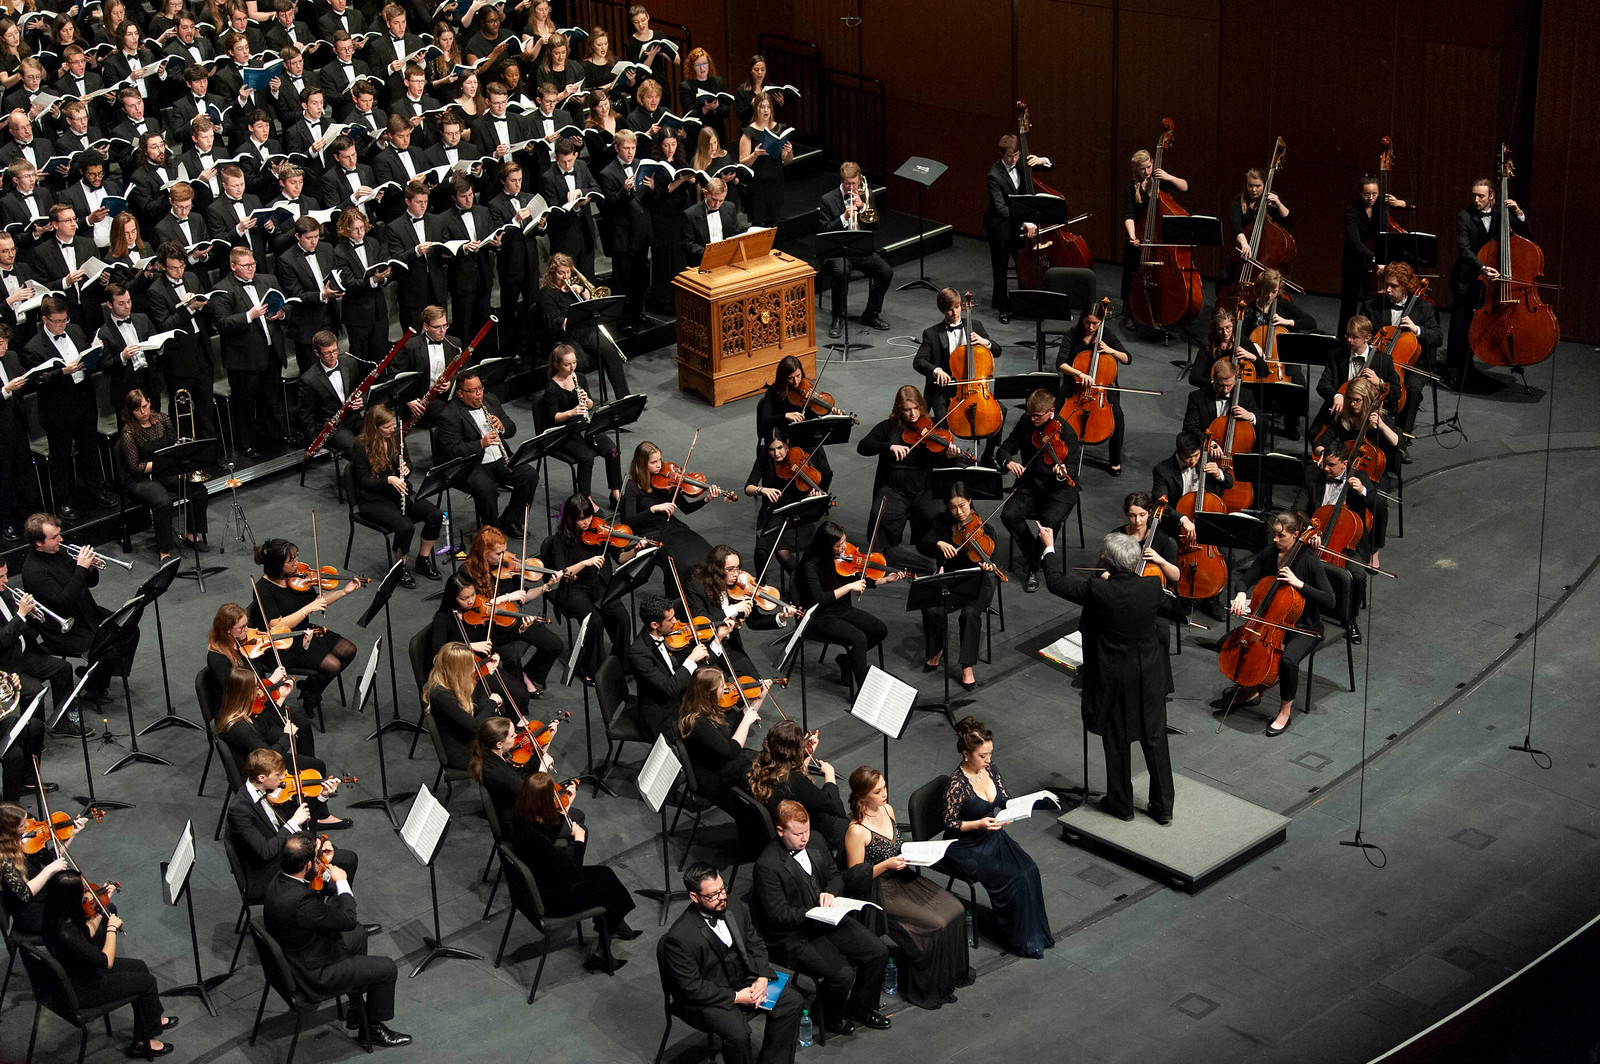 Orchestra and choir performance